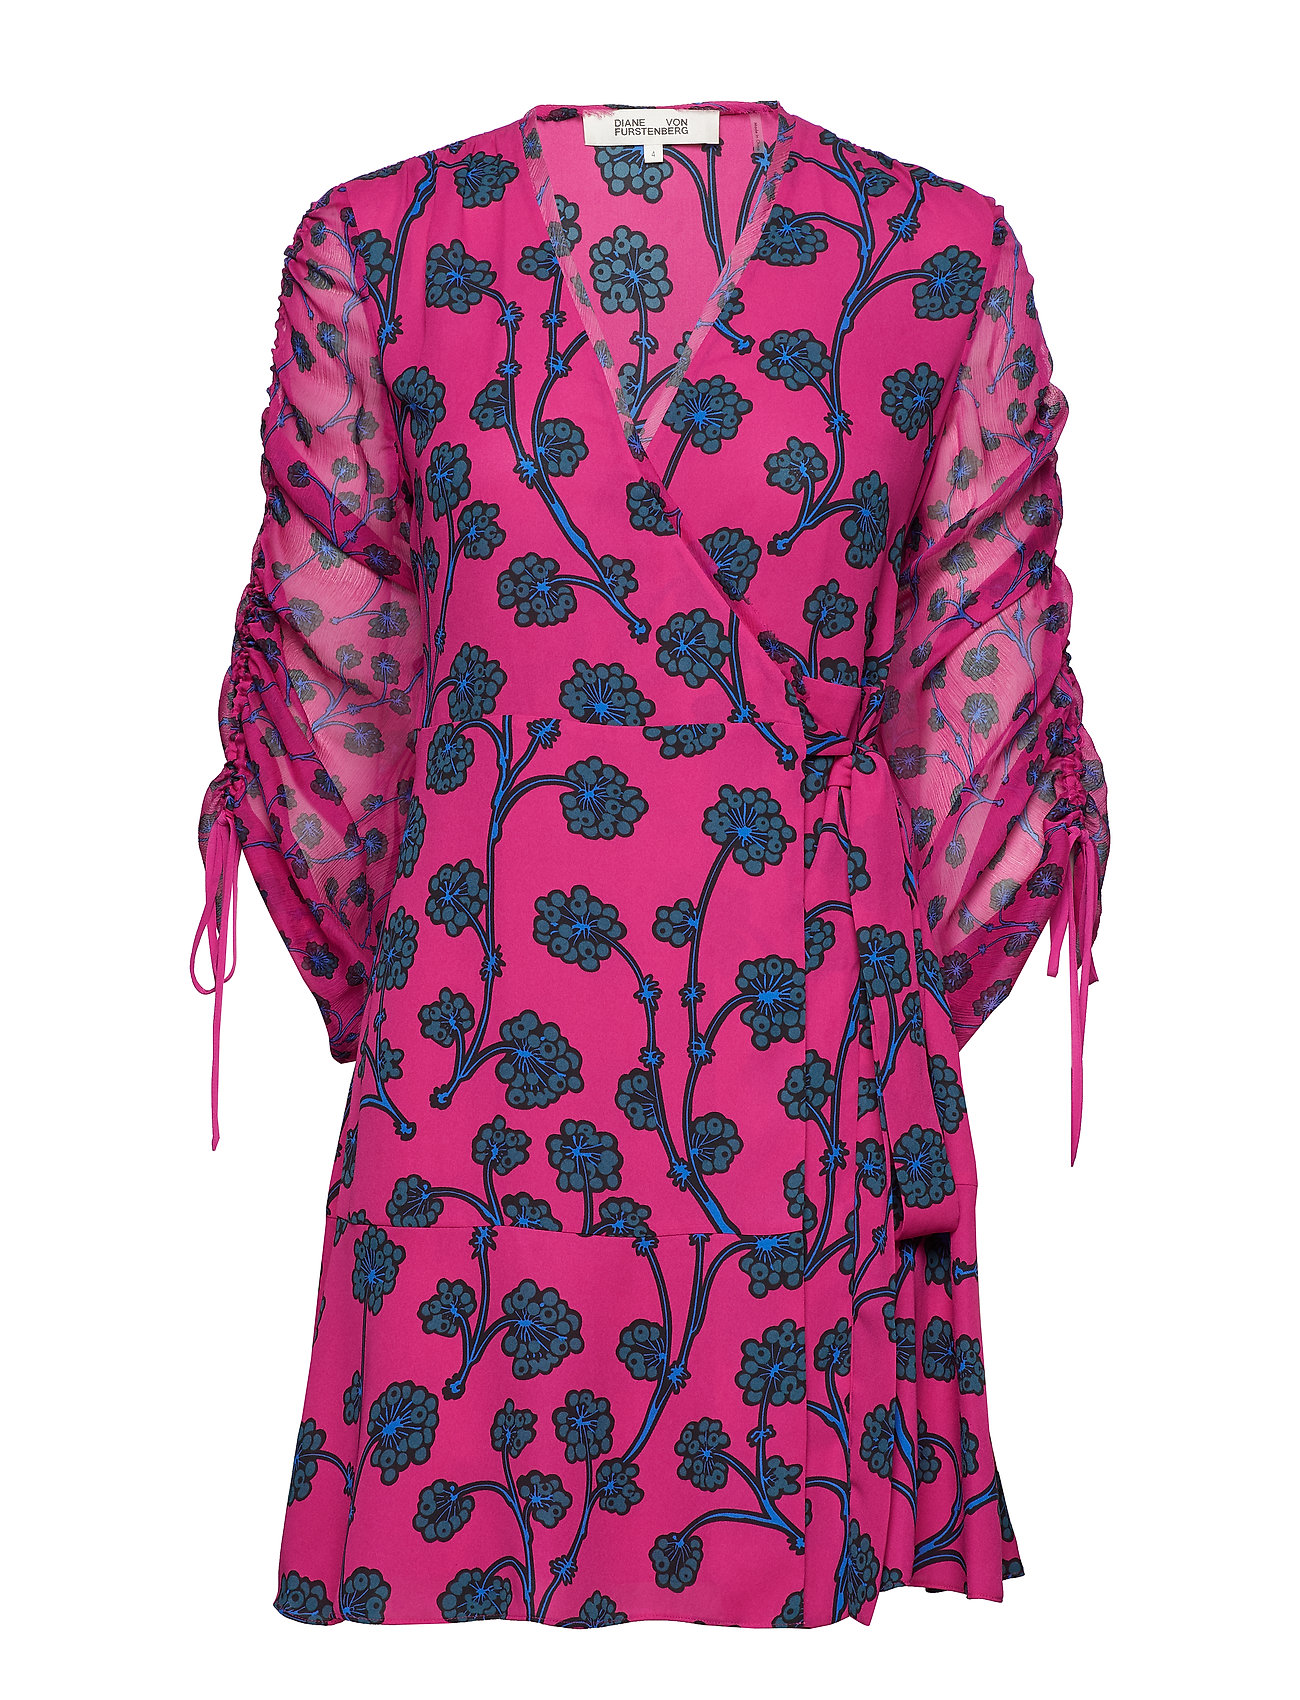 Diane von Furstenberg DVF TAMRA - DRAGON BERRY SHOCKING PINK